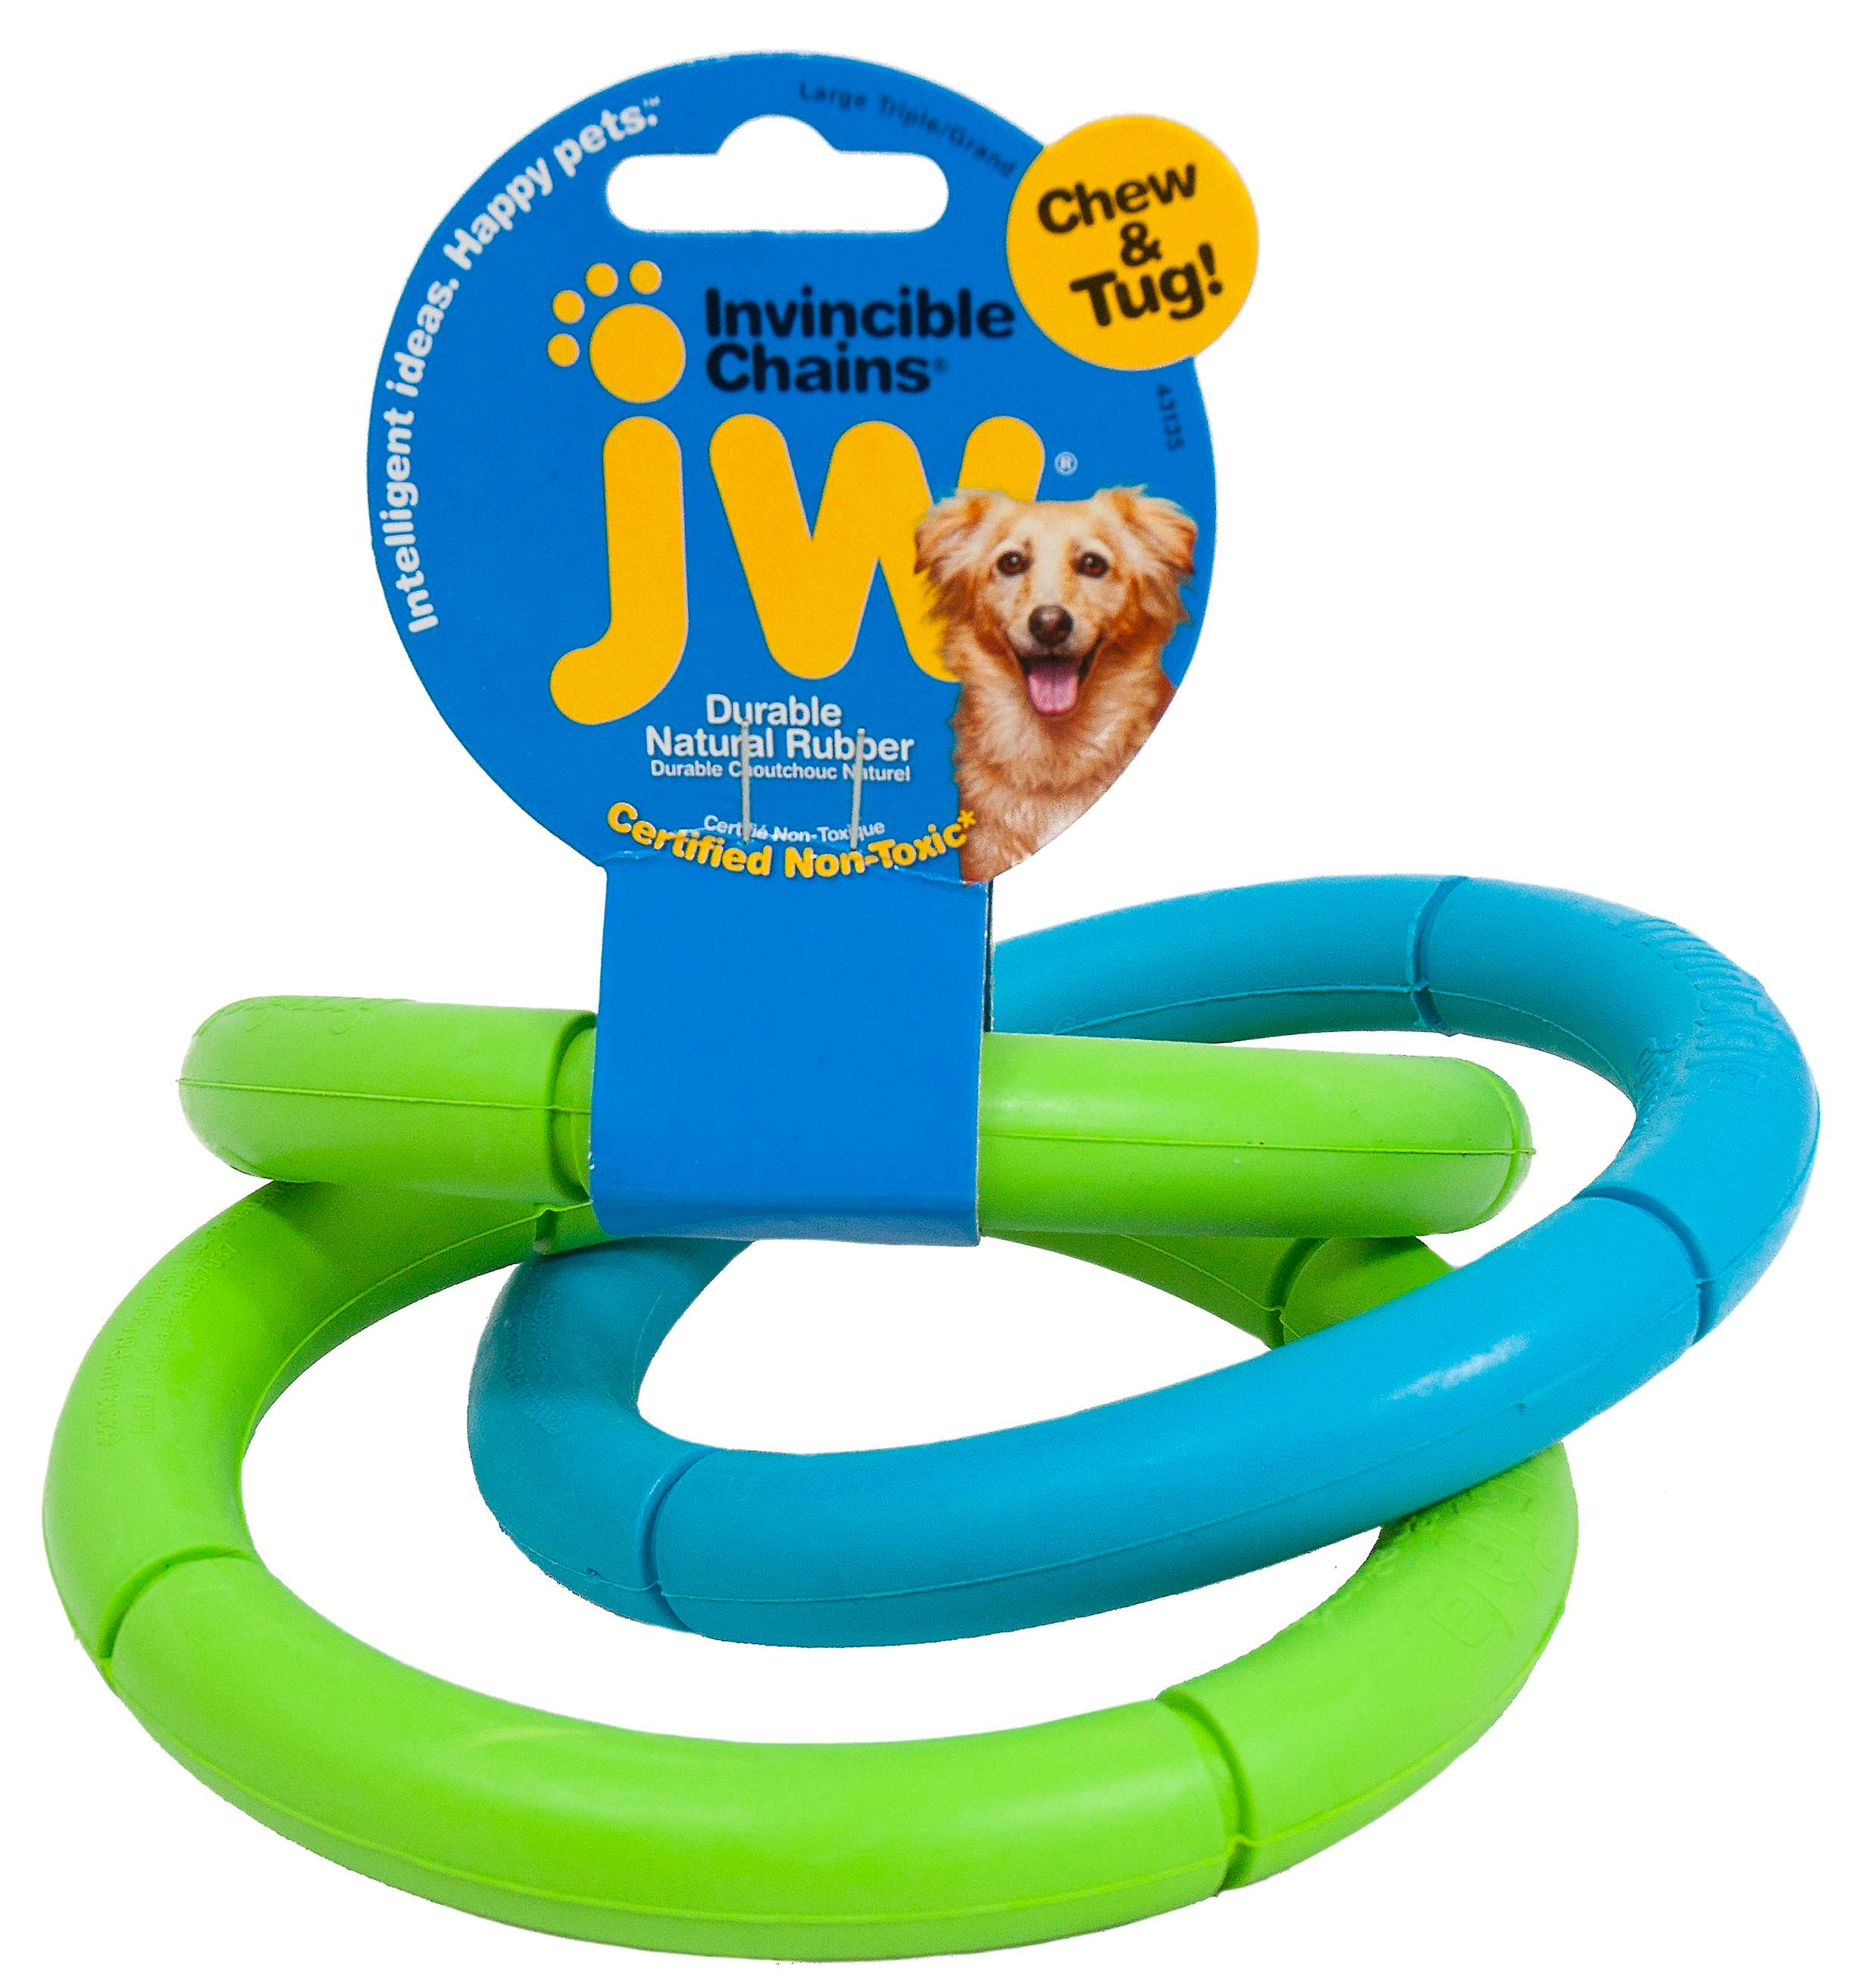 JW Invincible Chains Grande Triple (Dogs , Toys & Sport , Chew Toys)